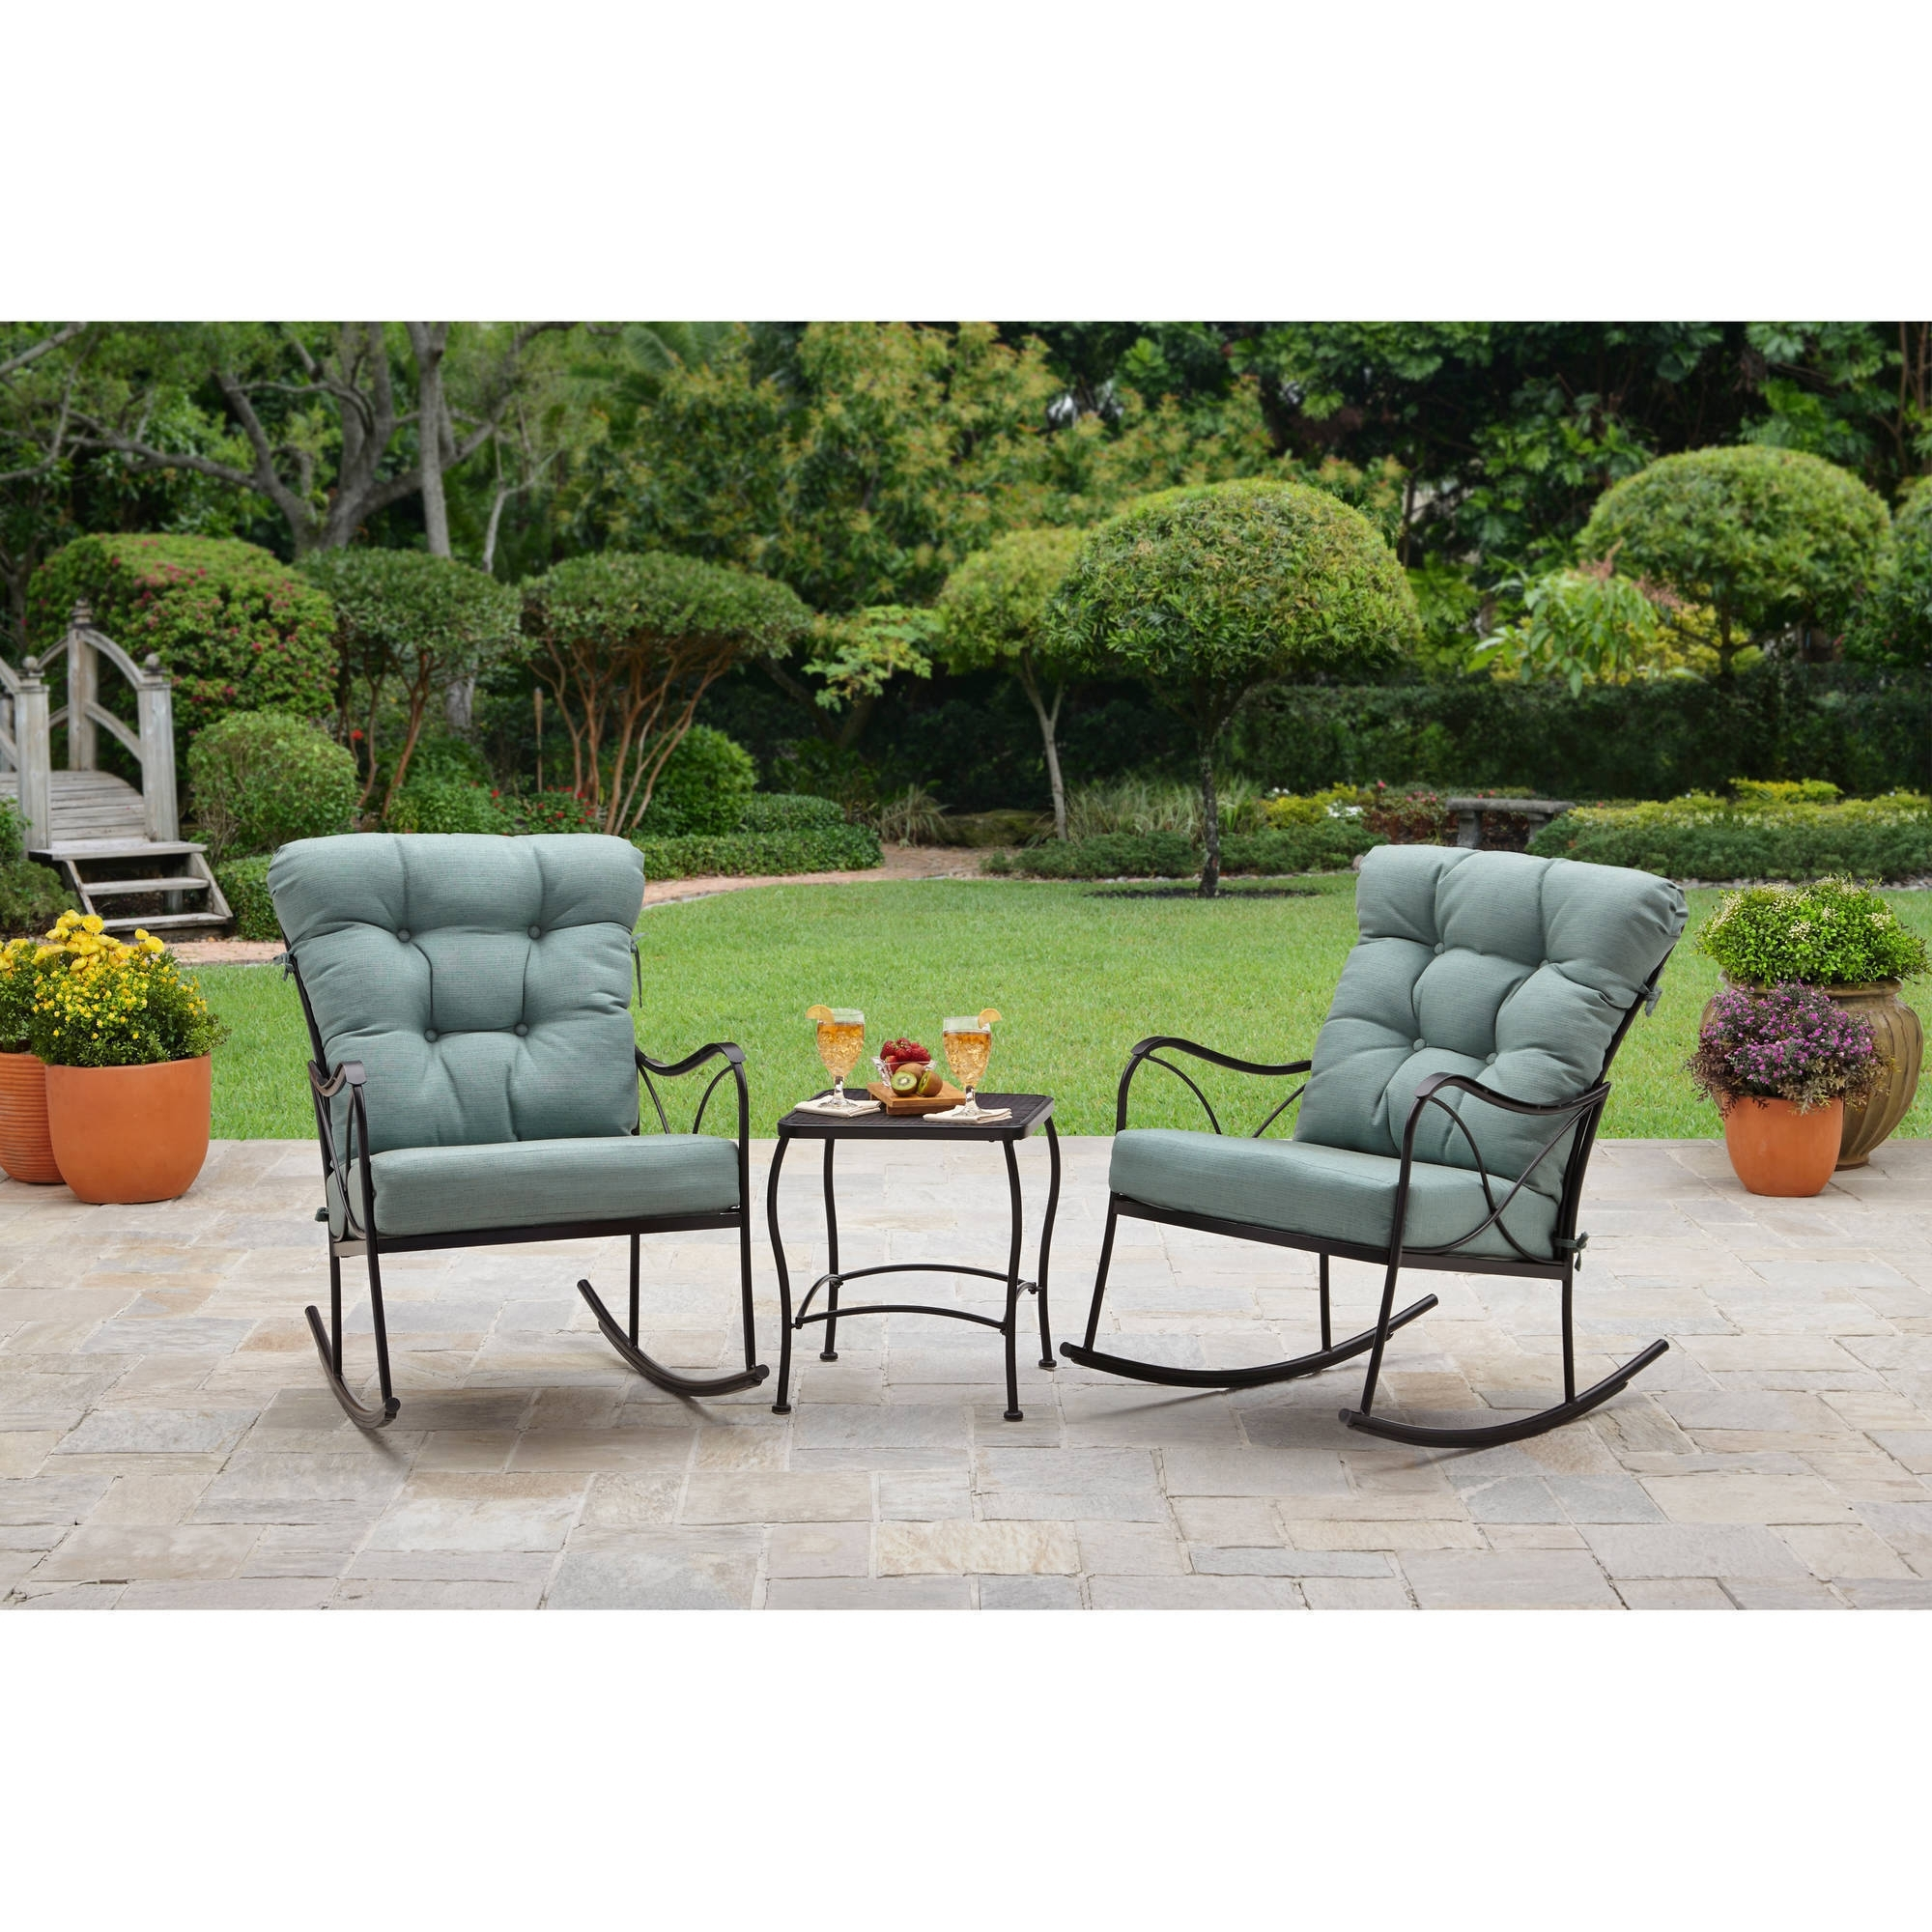 Outdoor Rocking Chairs With Table With Widely Used Better Homes And Gardens Seacliff Patio Furniture Collection (View 12 of 15)